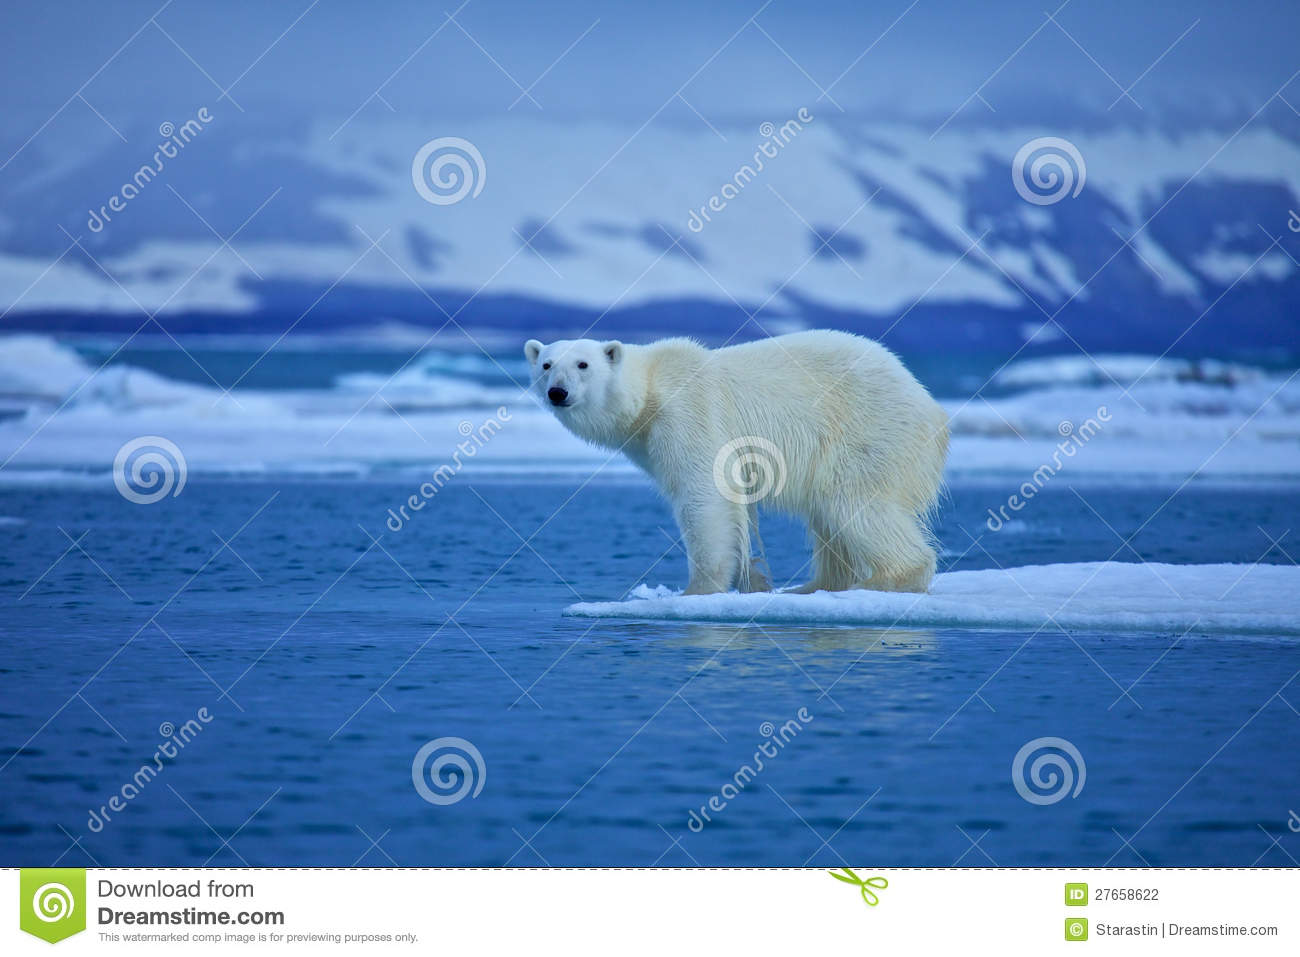 polar bear ecology Polar bears and climate change: declines in polar bear body size linked to nutritional stress: long-term trends in the population ecology of polar bears in western hudson bay in relation to climate change arctic 52:294-306 stirling, i et al 2011.